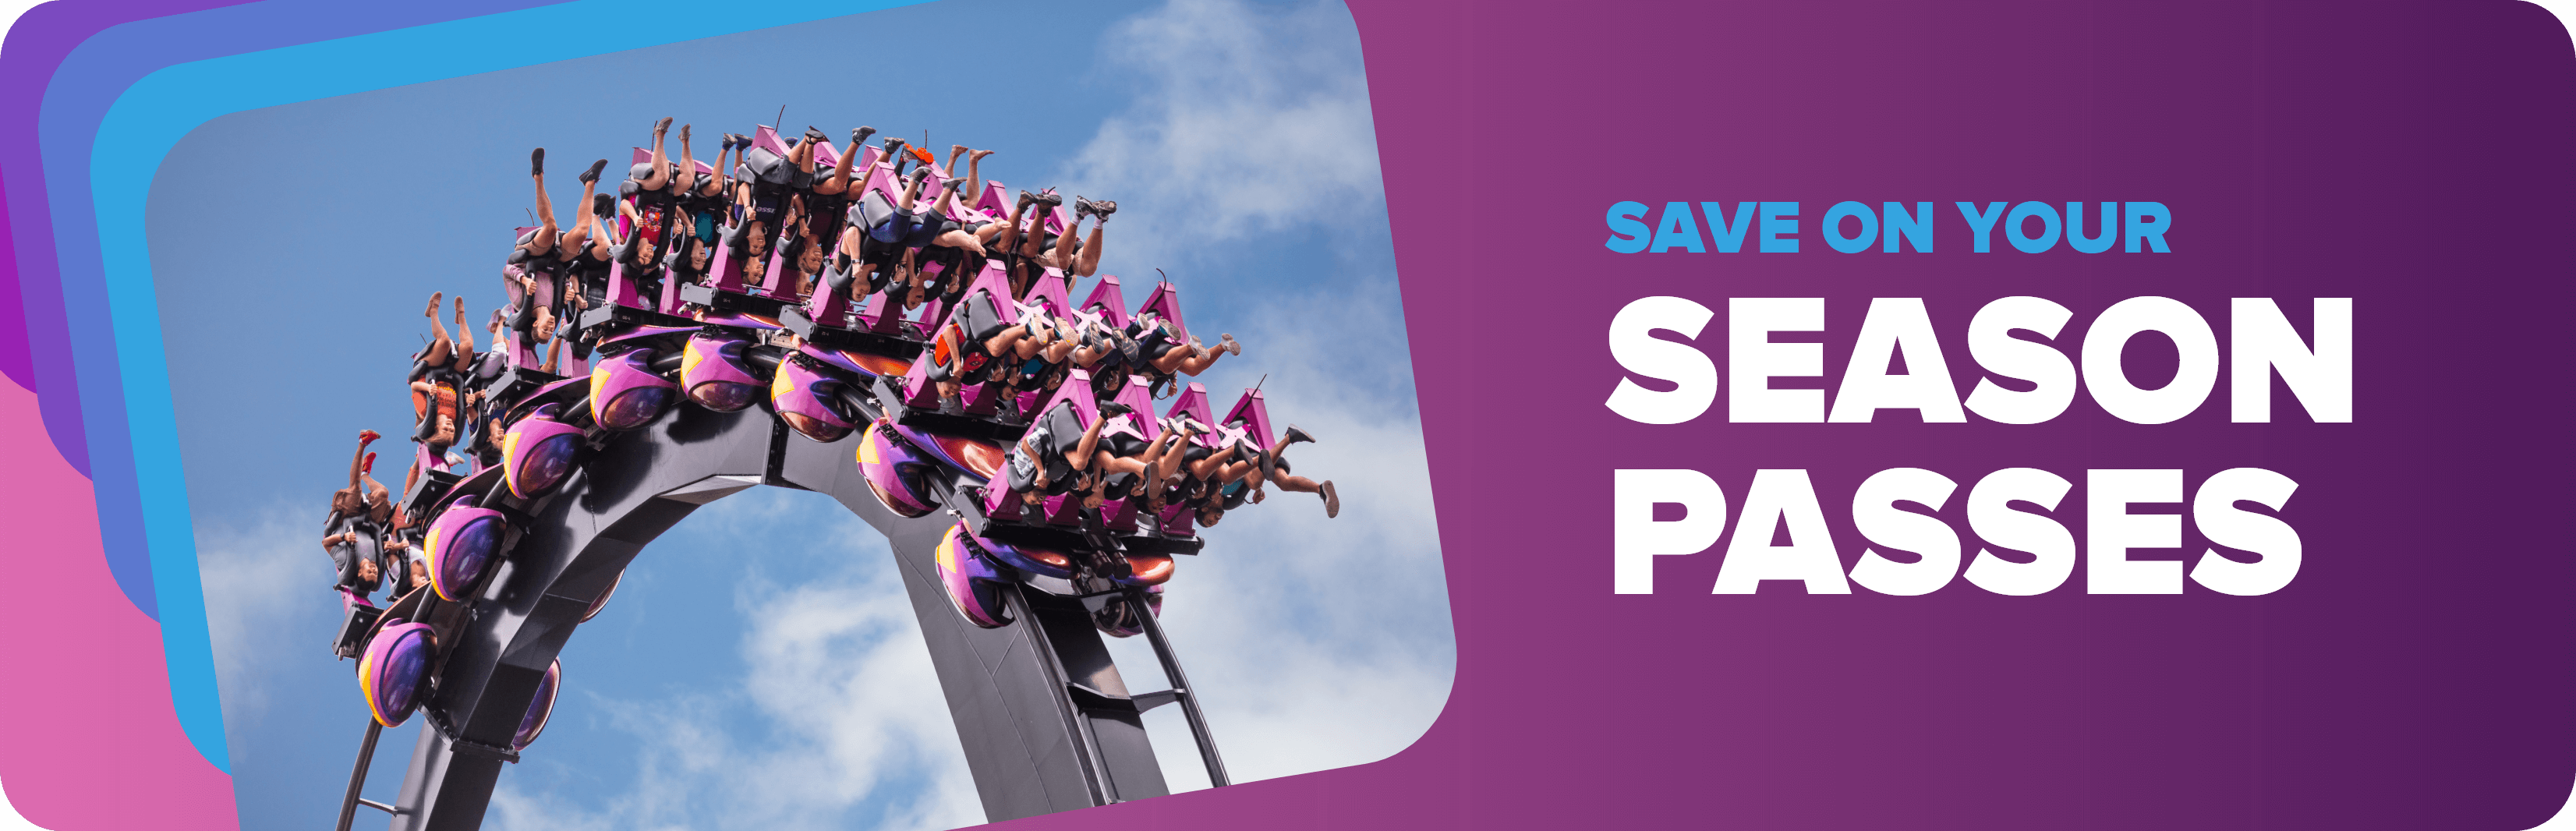 Save on your season passes